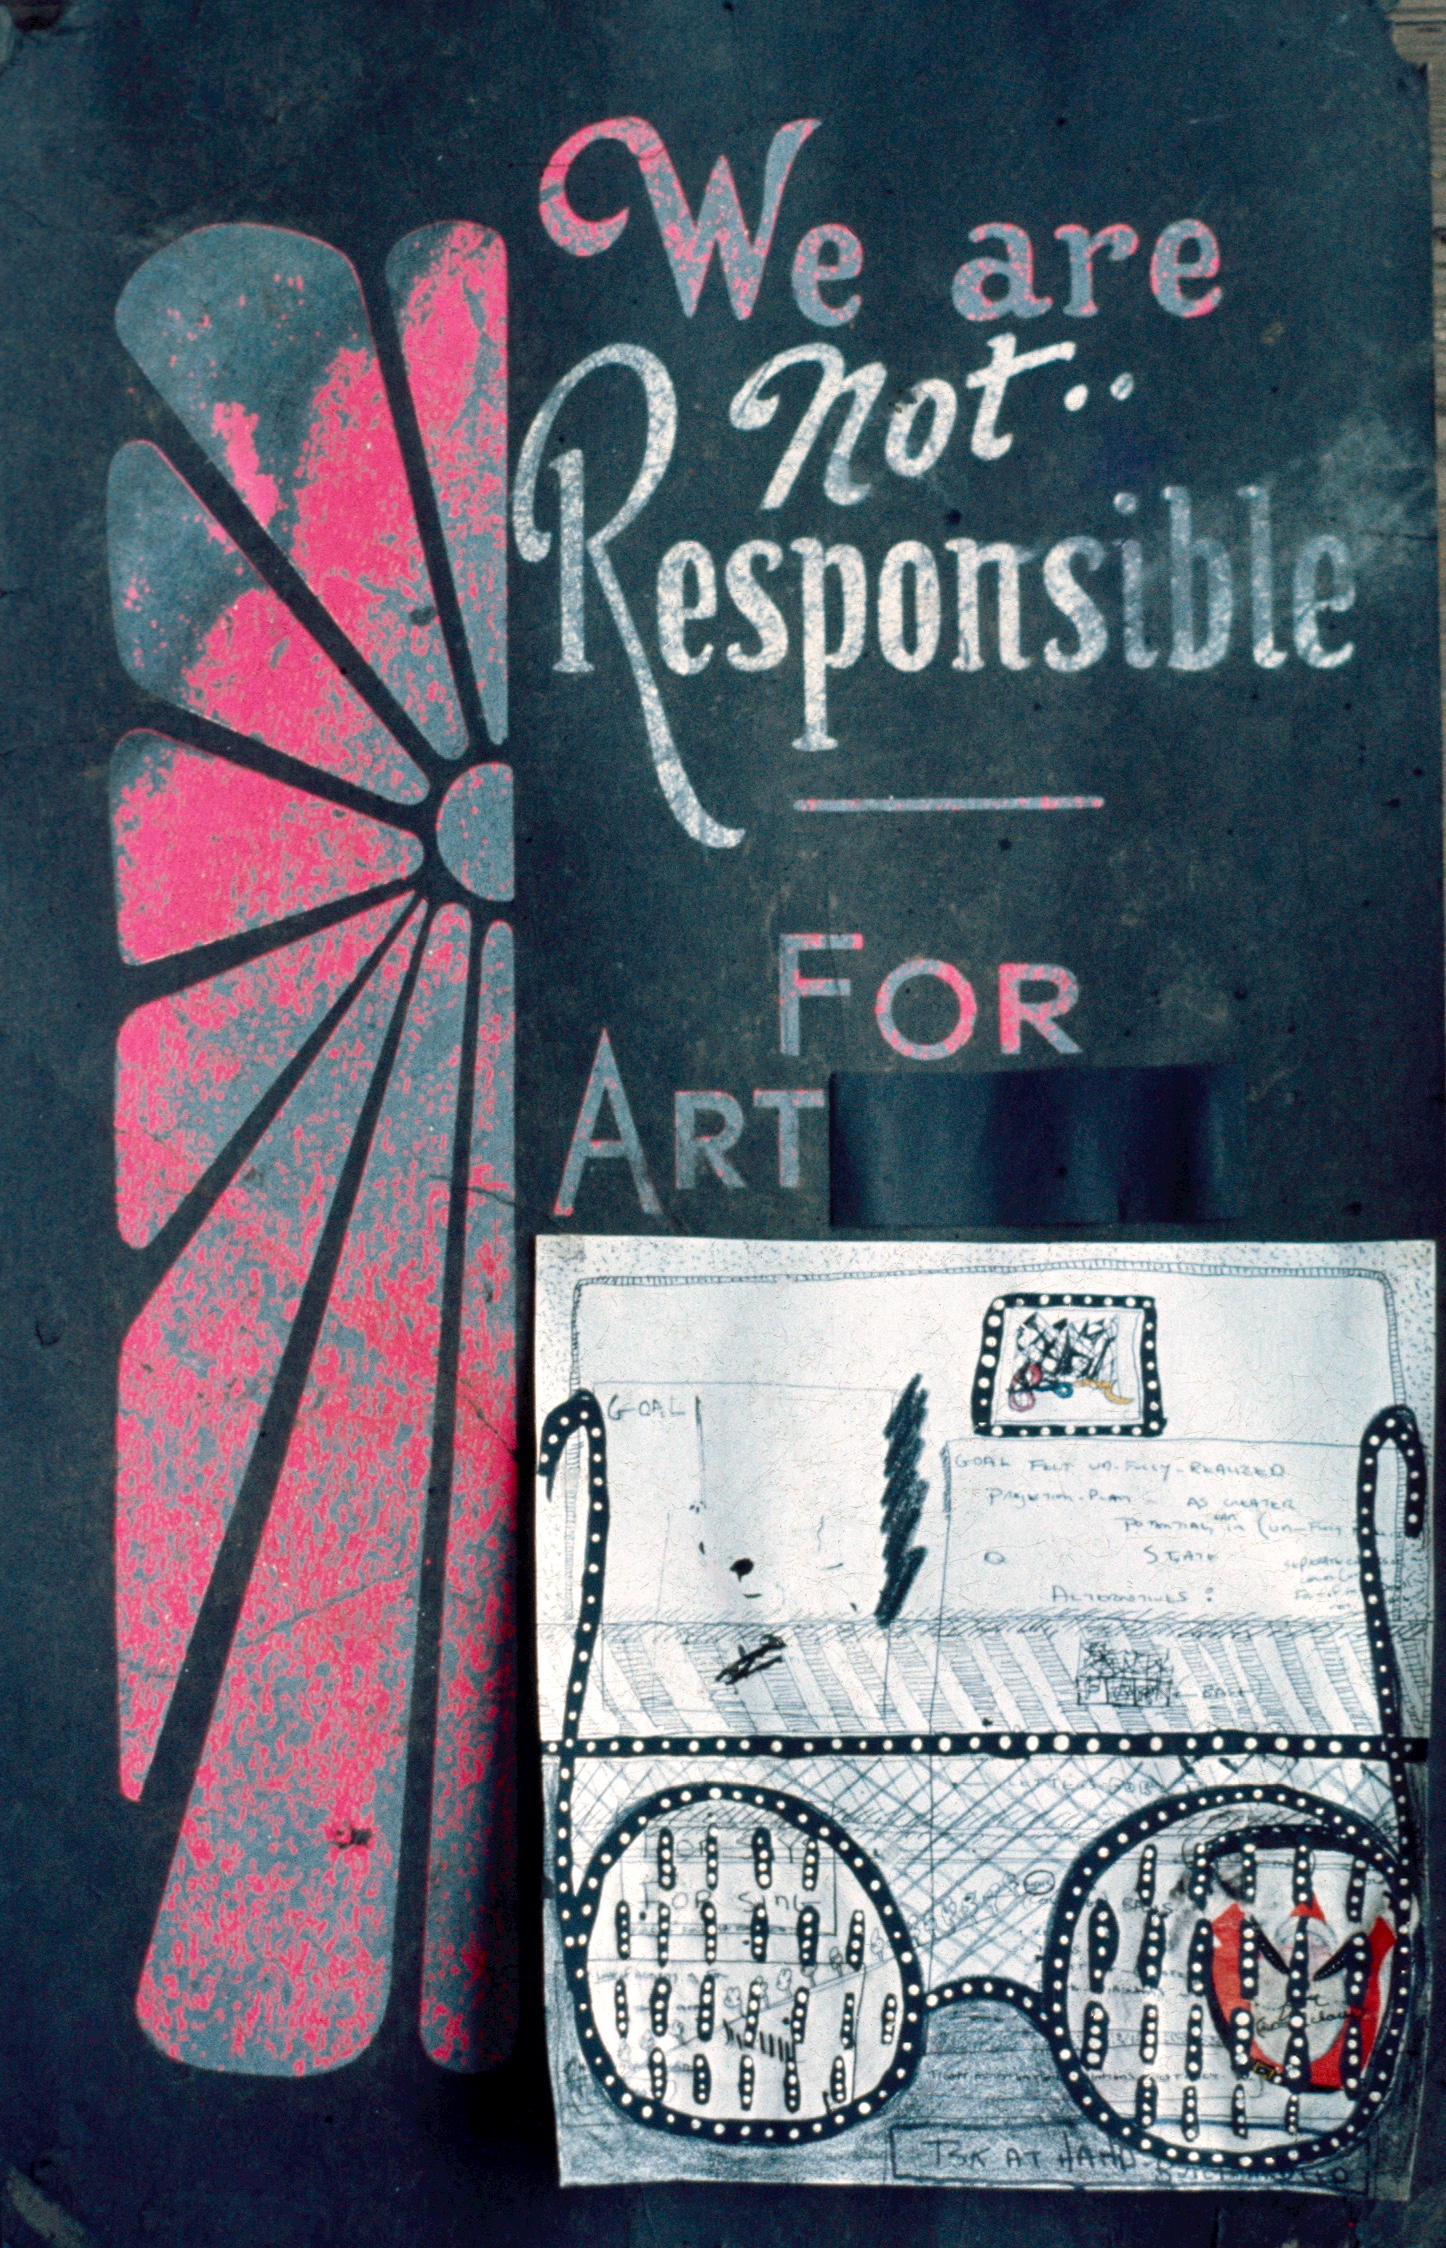 We Are Not Responsible for Art, 1977